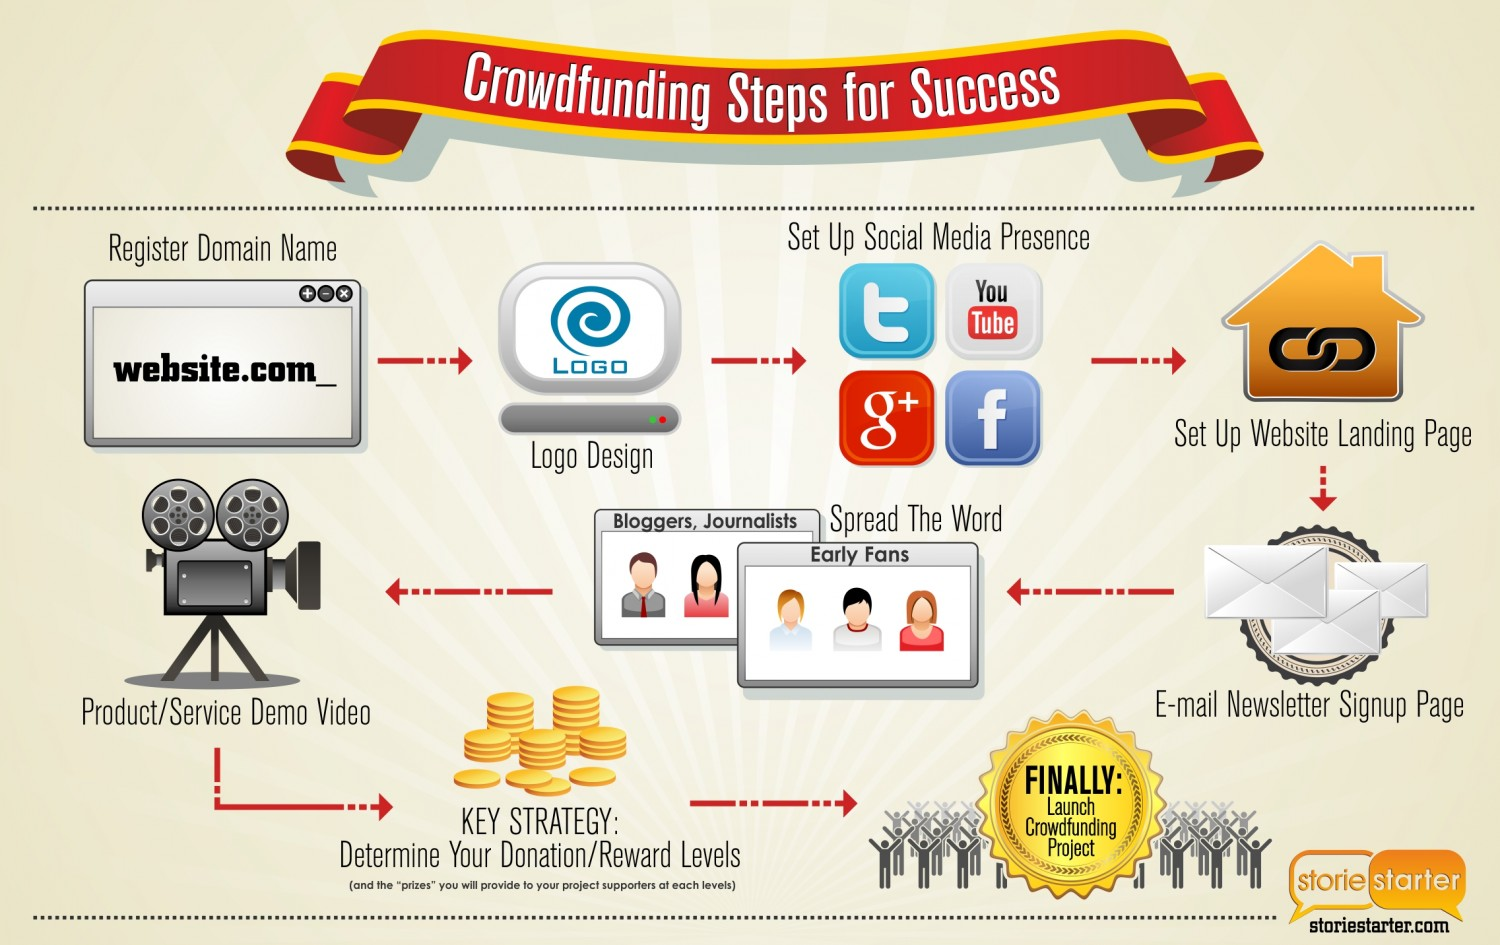 crowdfunding-steps-for-success_53261edd8cf52_w1500